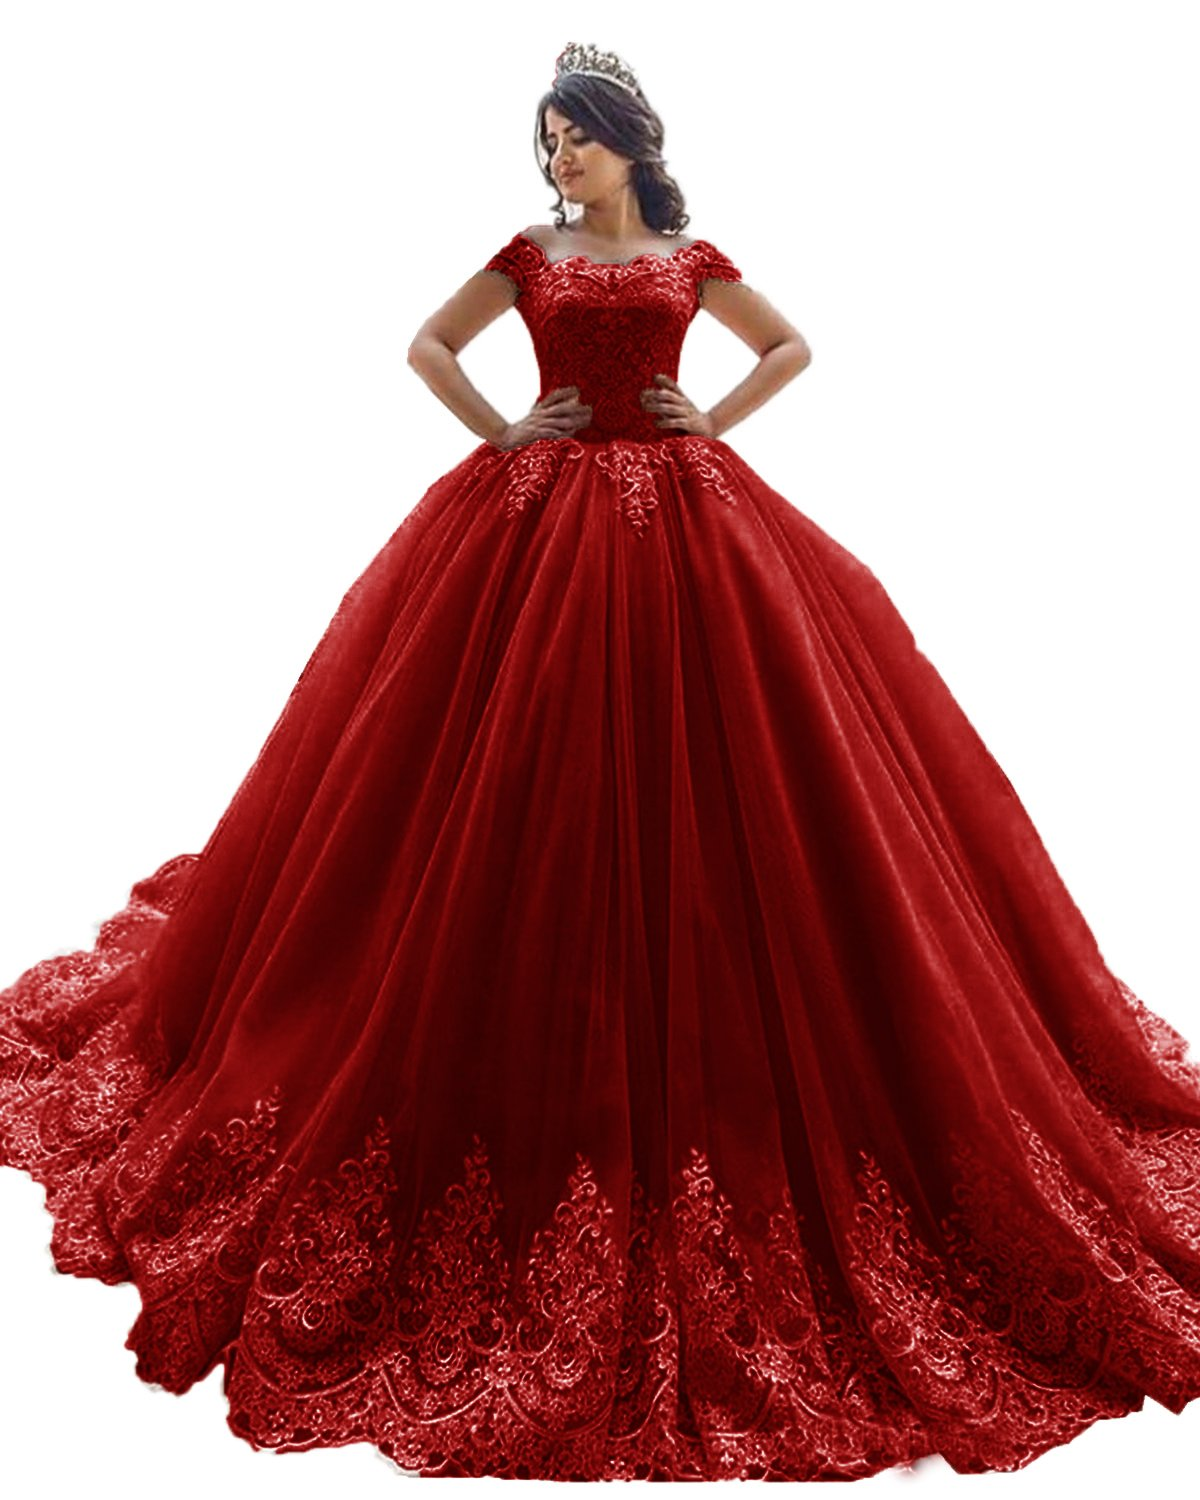 3f3063a218e XSWPL Elegant Off The Shoulder Ball Gowns Prom Dress for Sweet 16  Quinceanera Dress Burgundy US12